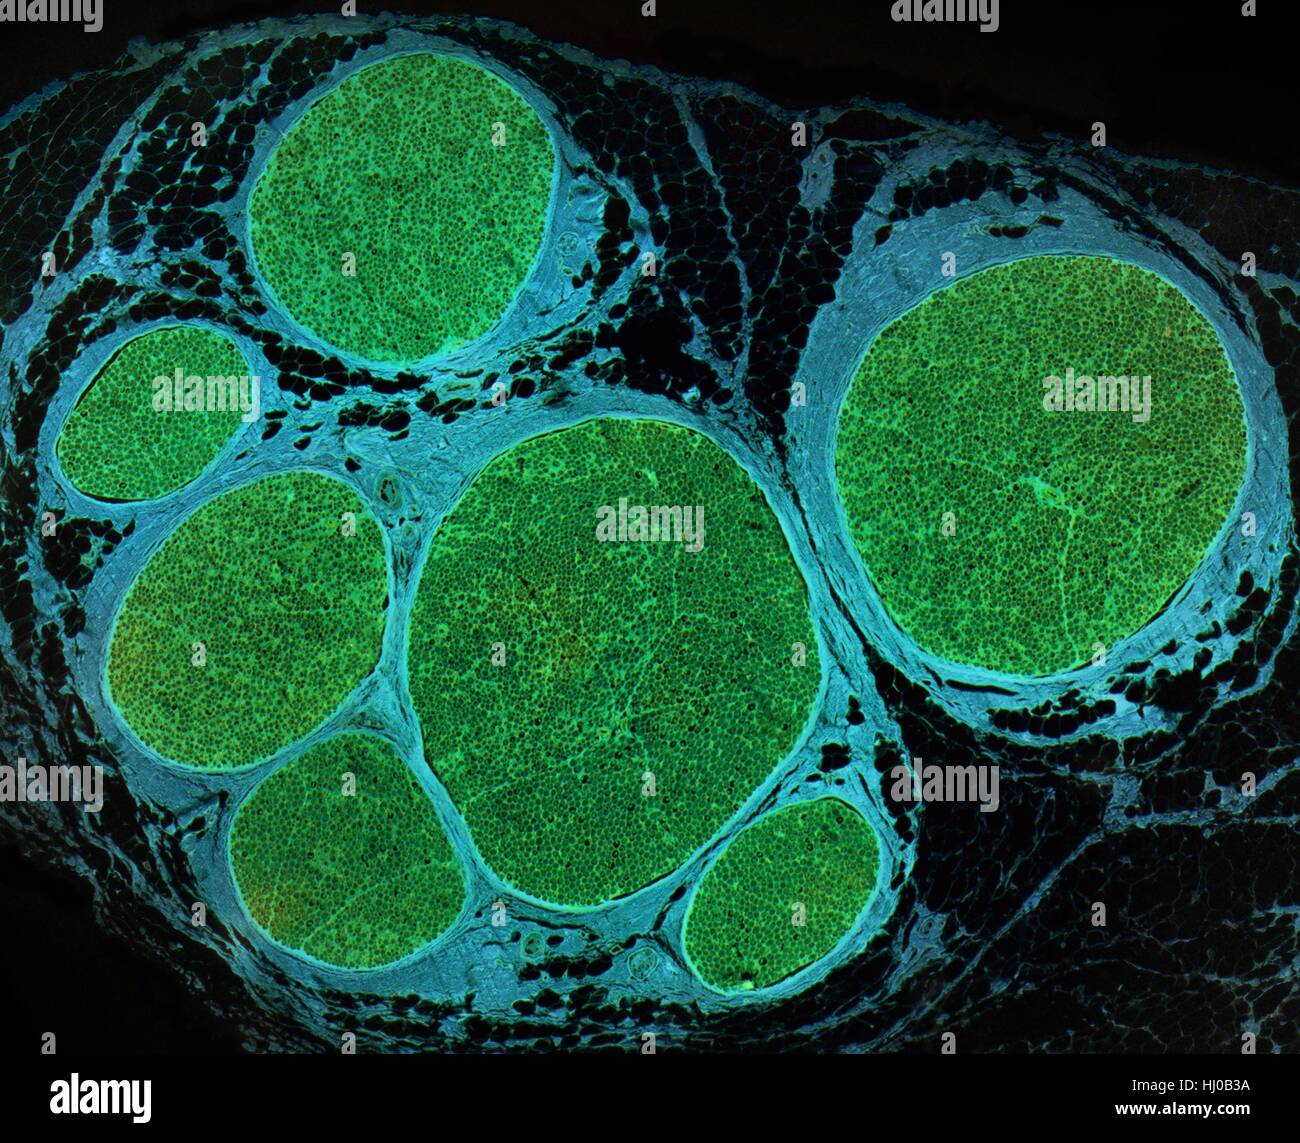 Nerve fibres. Light micrograph (LM) of a transverse section through a bundle (fascicle) of nerve fibres. Within Stock Photo